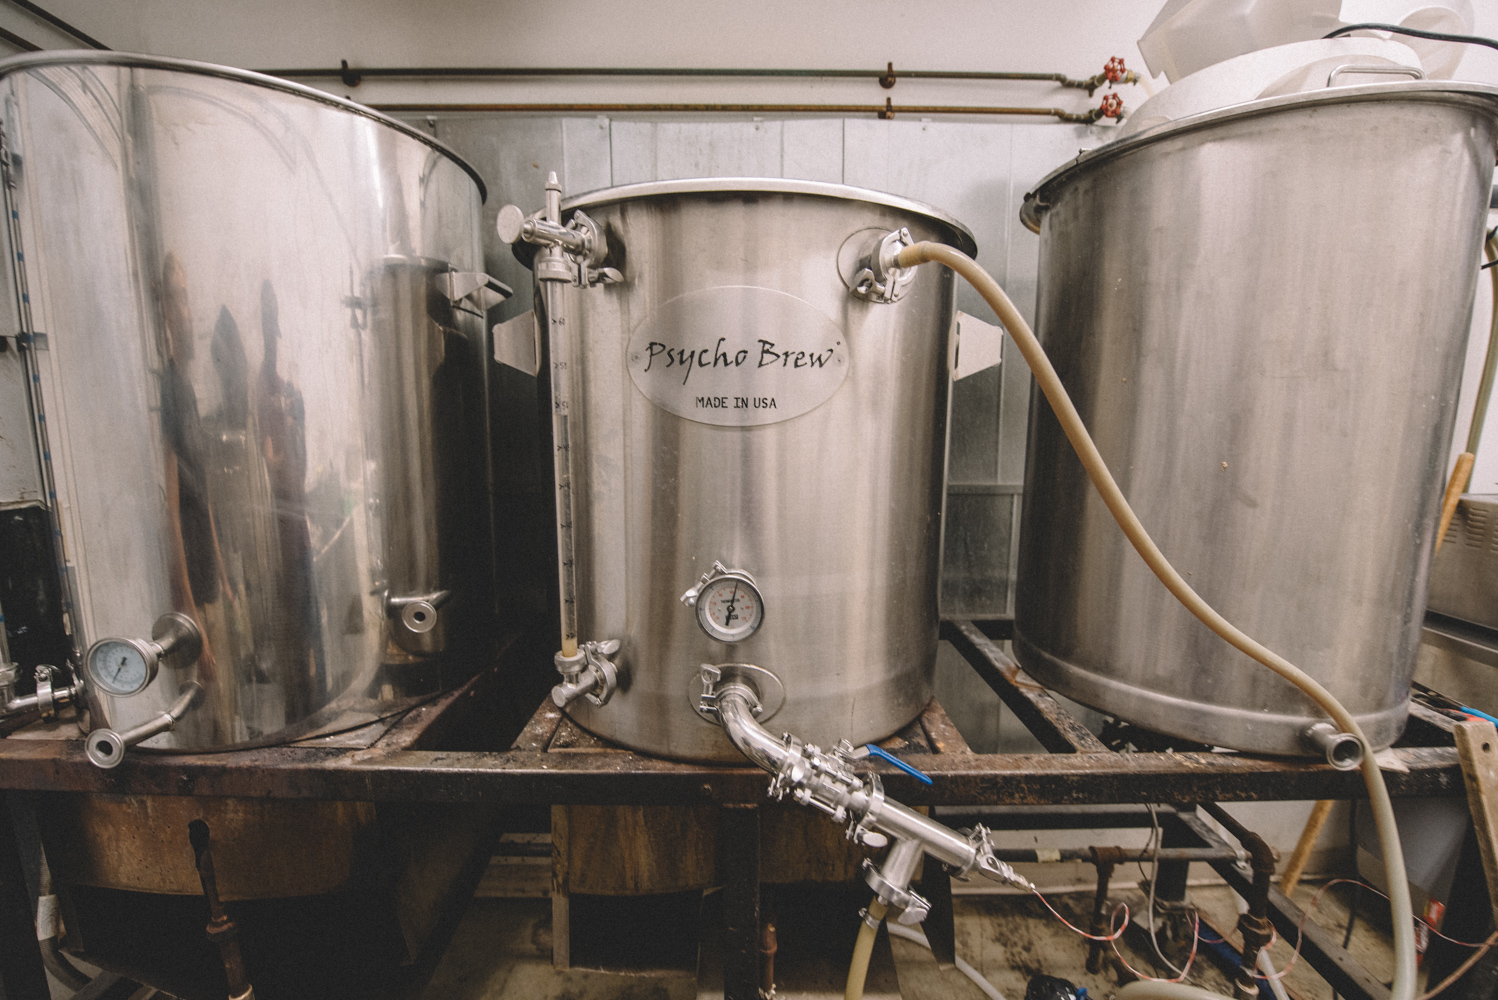 Scratch-Brewing-Co-Carbondale-Ava-Illinois-Good-Beer-Hunting-Matt-Sampson-Photography-Brewhouse-1.jpg